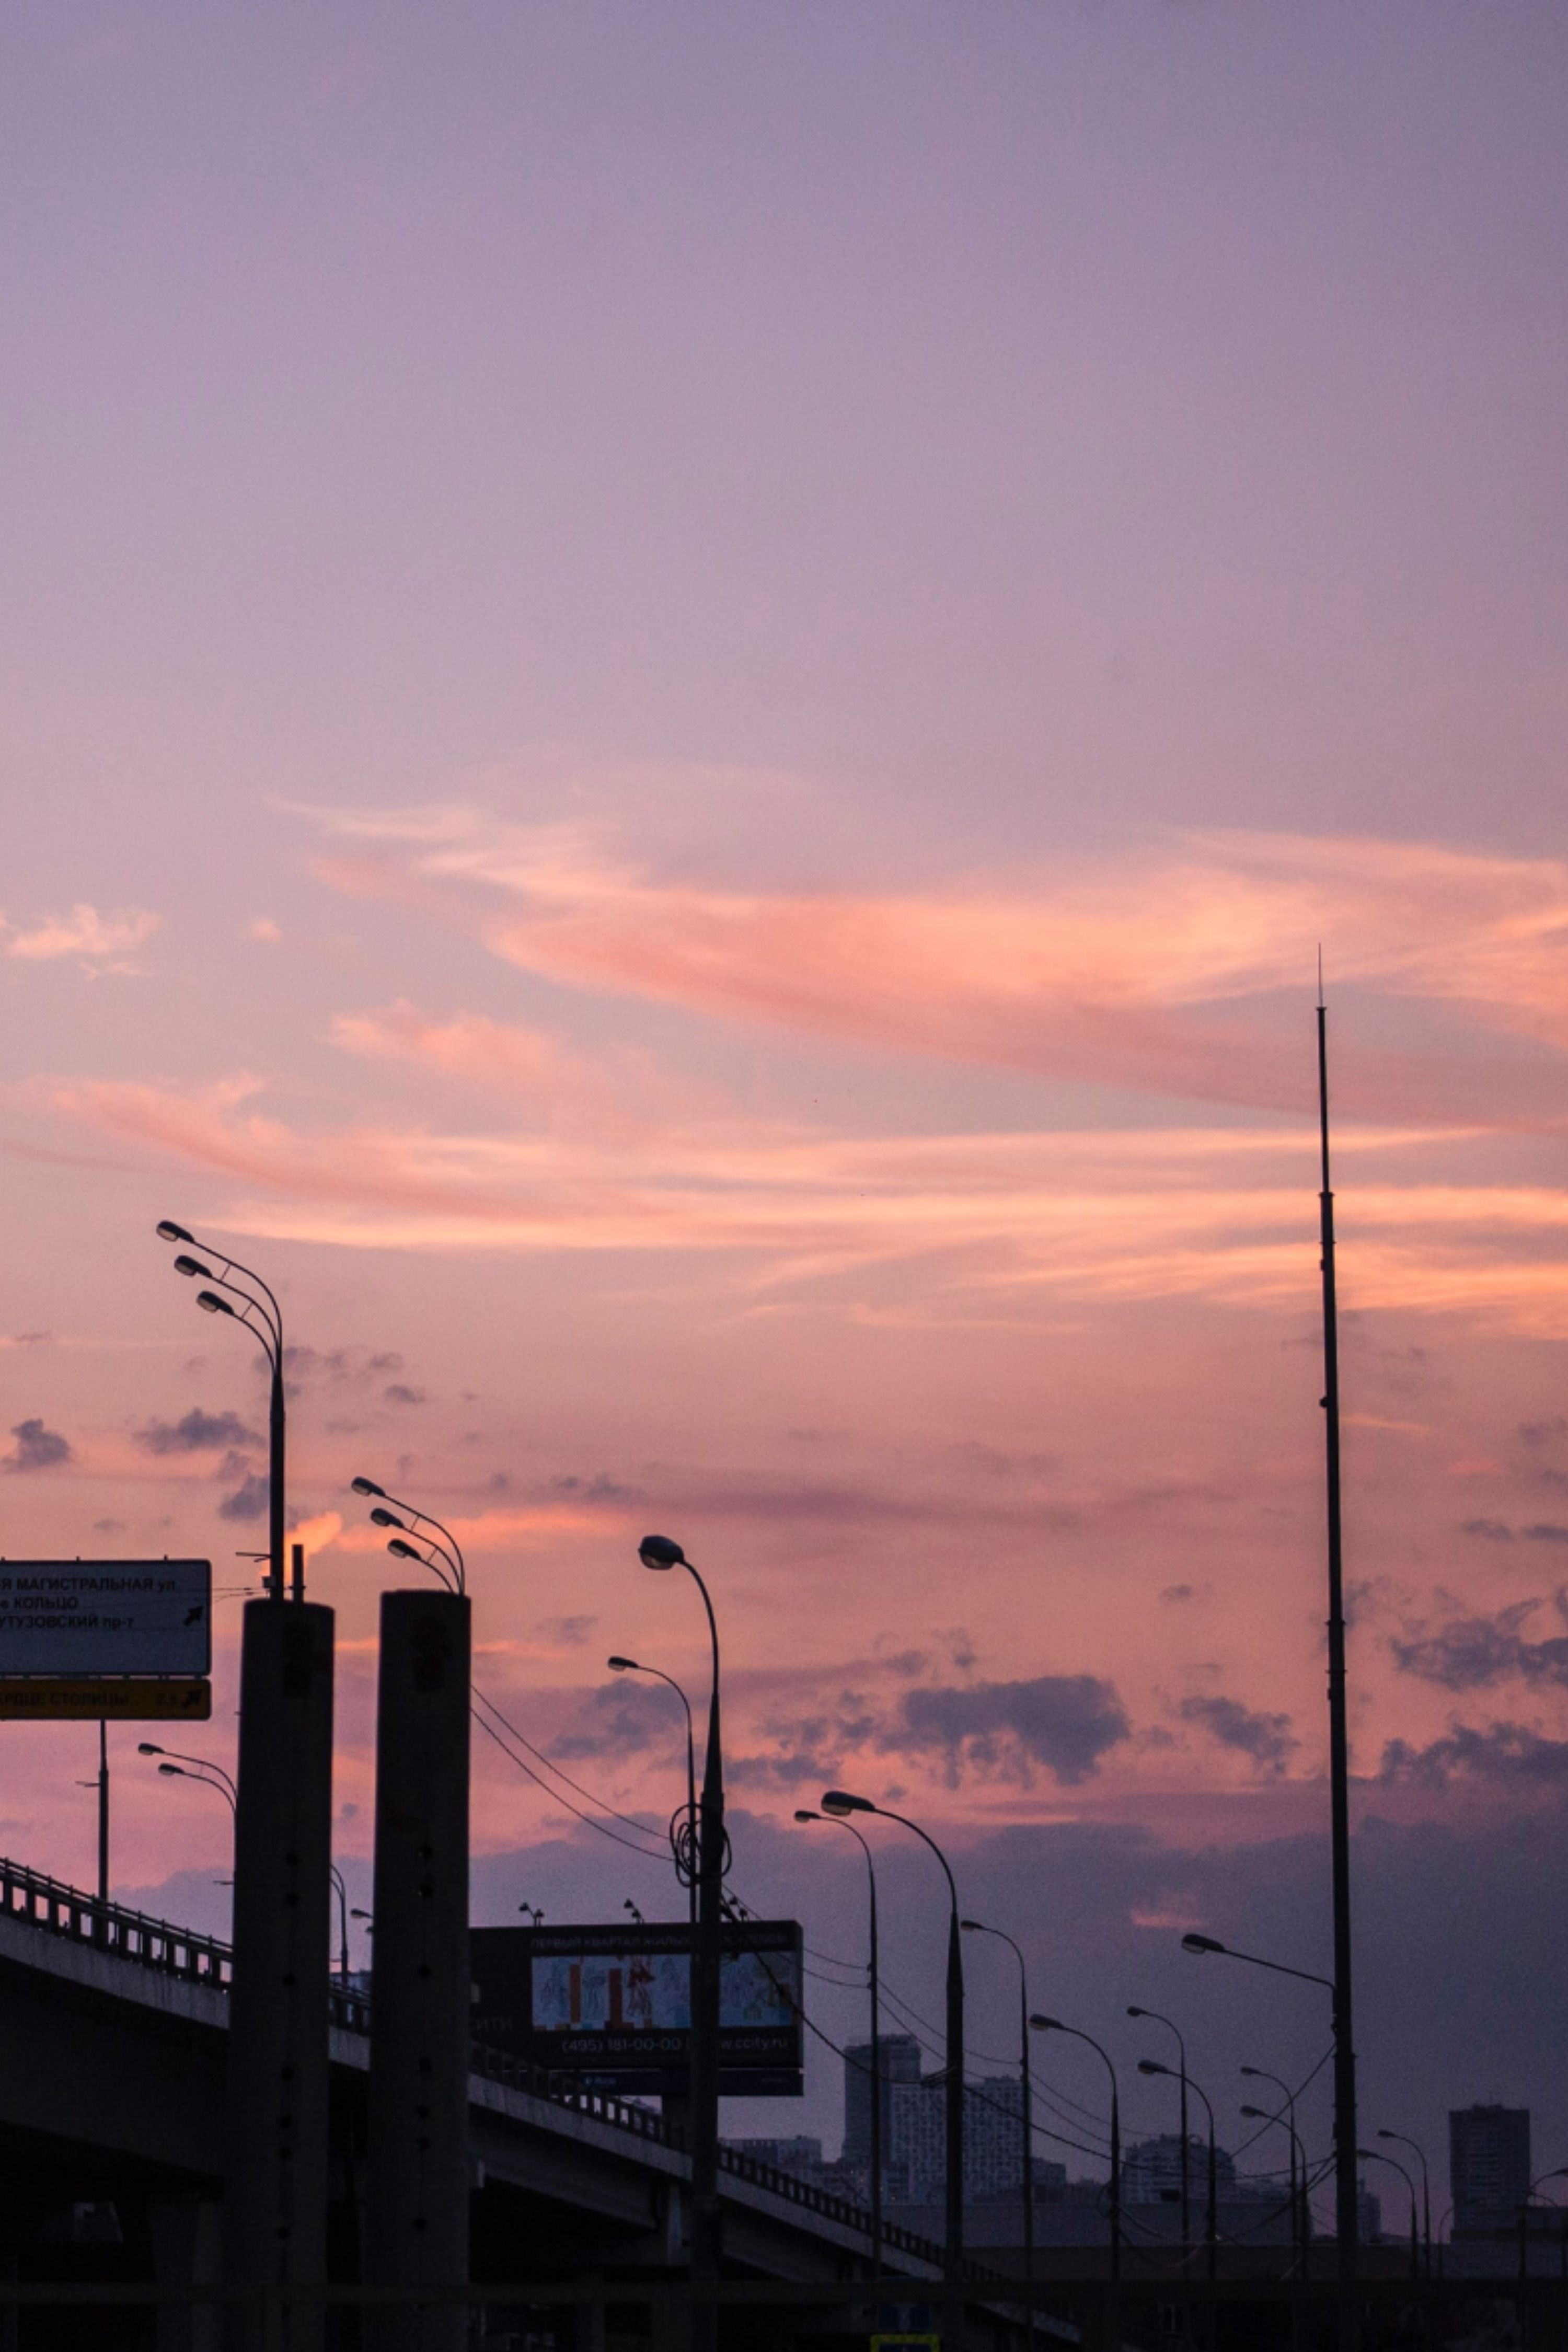 Aesthetic Photo Vintage Retro Style Pink Orange Sunset Picture Cool Wallpaper Best Screensaver In 2020 Photo Vintage Retro Sunset Pictures Aesthetic Photography